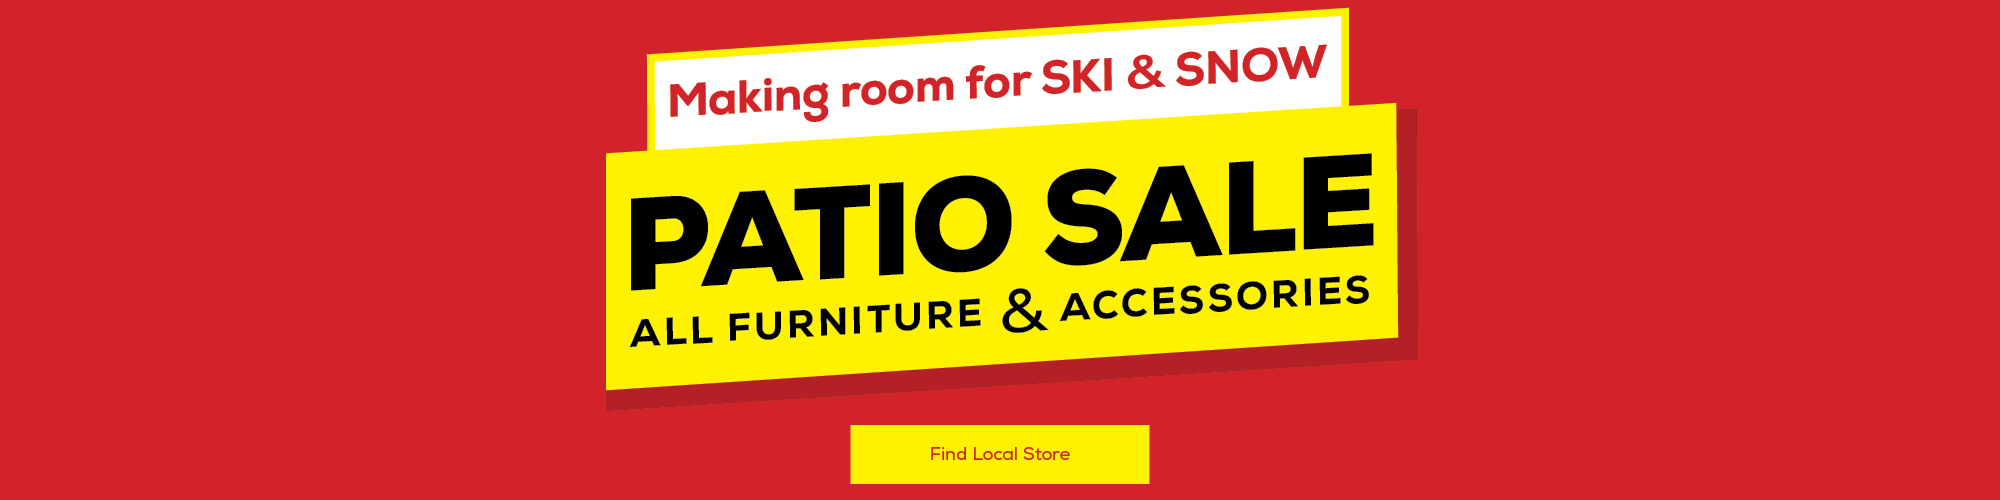 Patio Furniture Summer Clearance